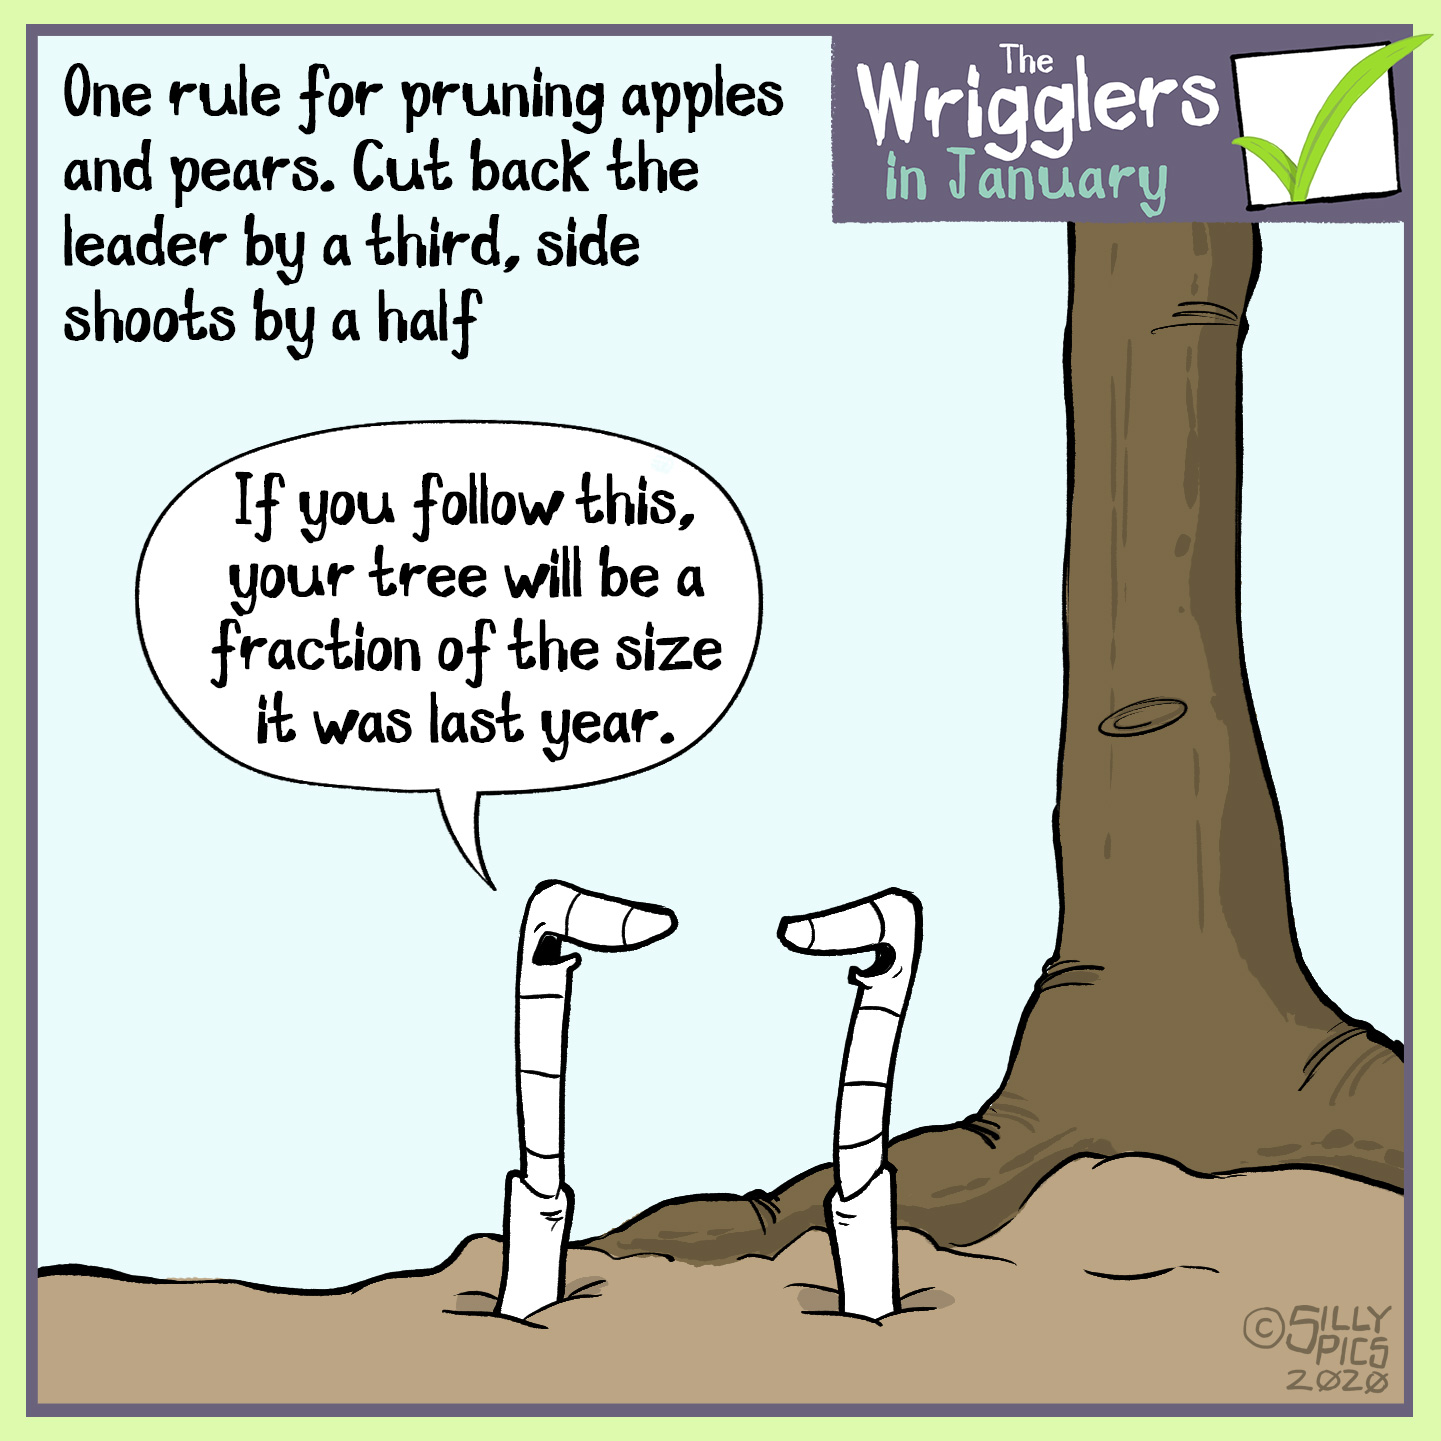 cartoon about pruning apple and pear trees